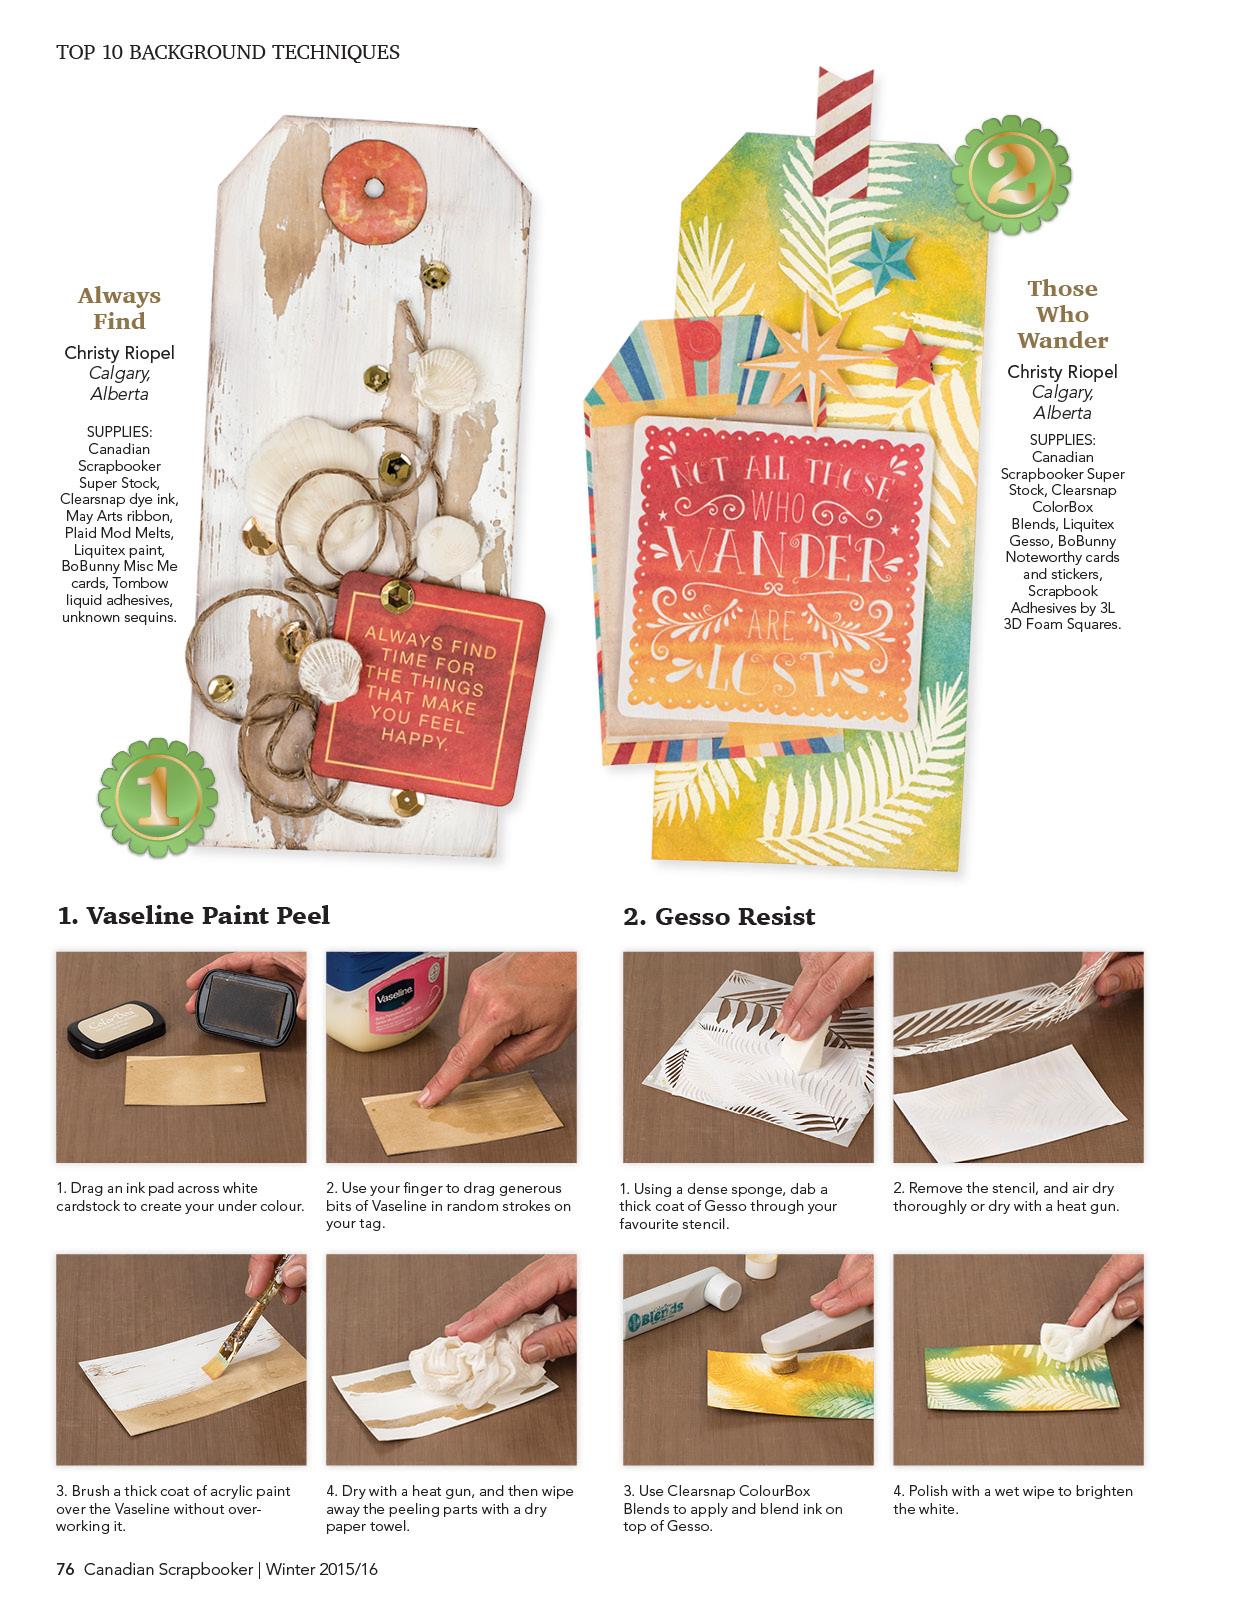 Tags designed using a variety of background techniques by Christy Riopel | Creative Scrapbooker Magazine